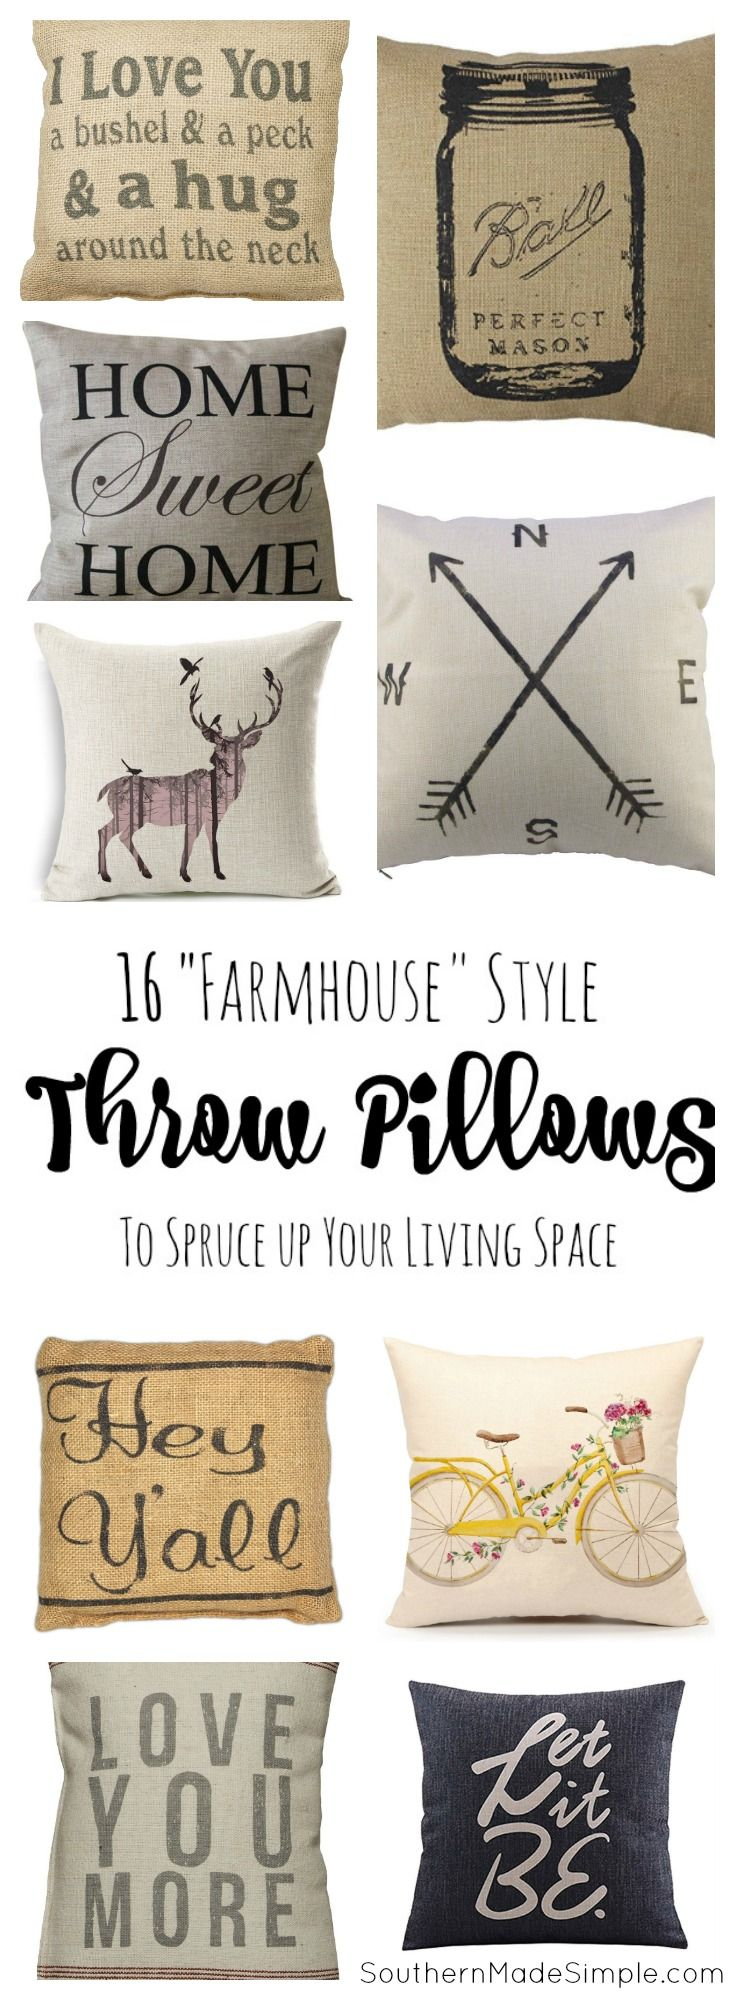 16 Farmhouse Style Throw Pillows to Spruce up your living space - all available…